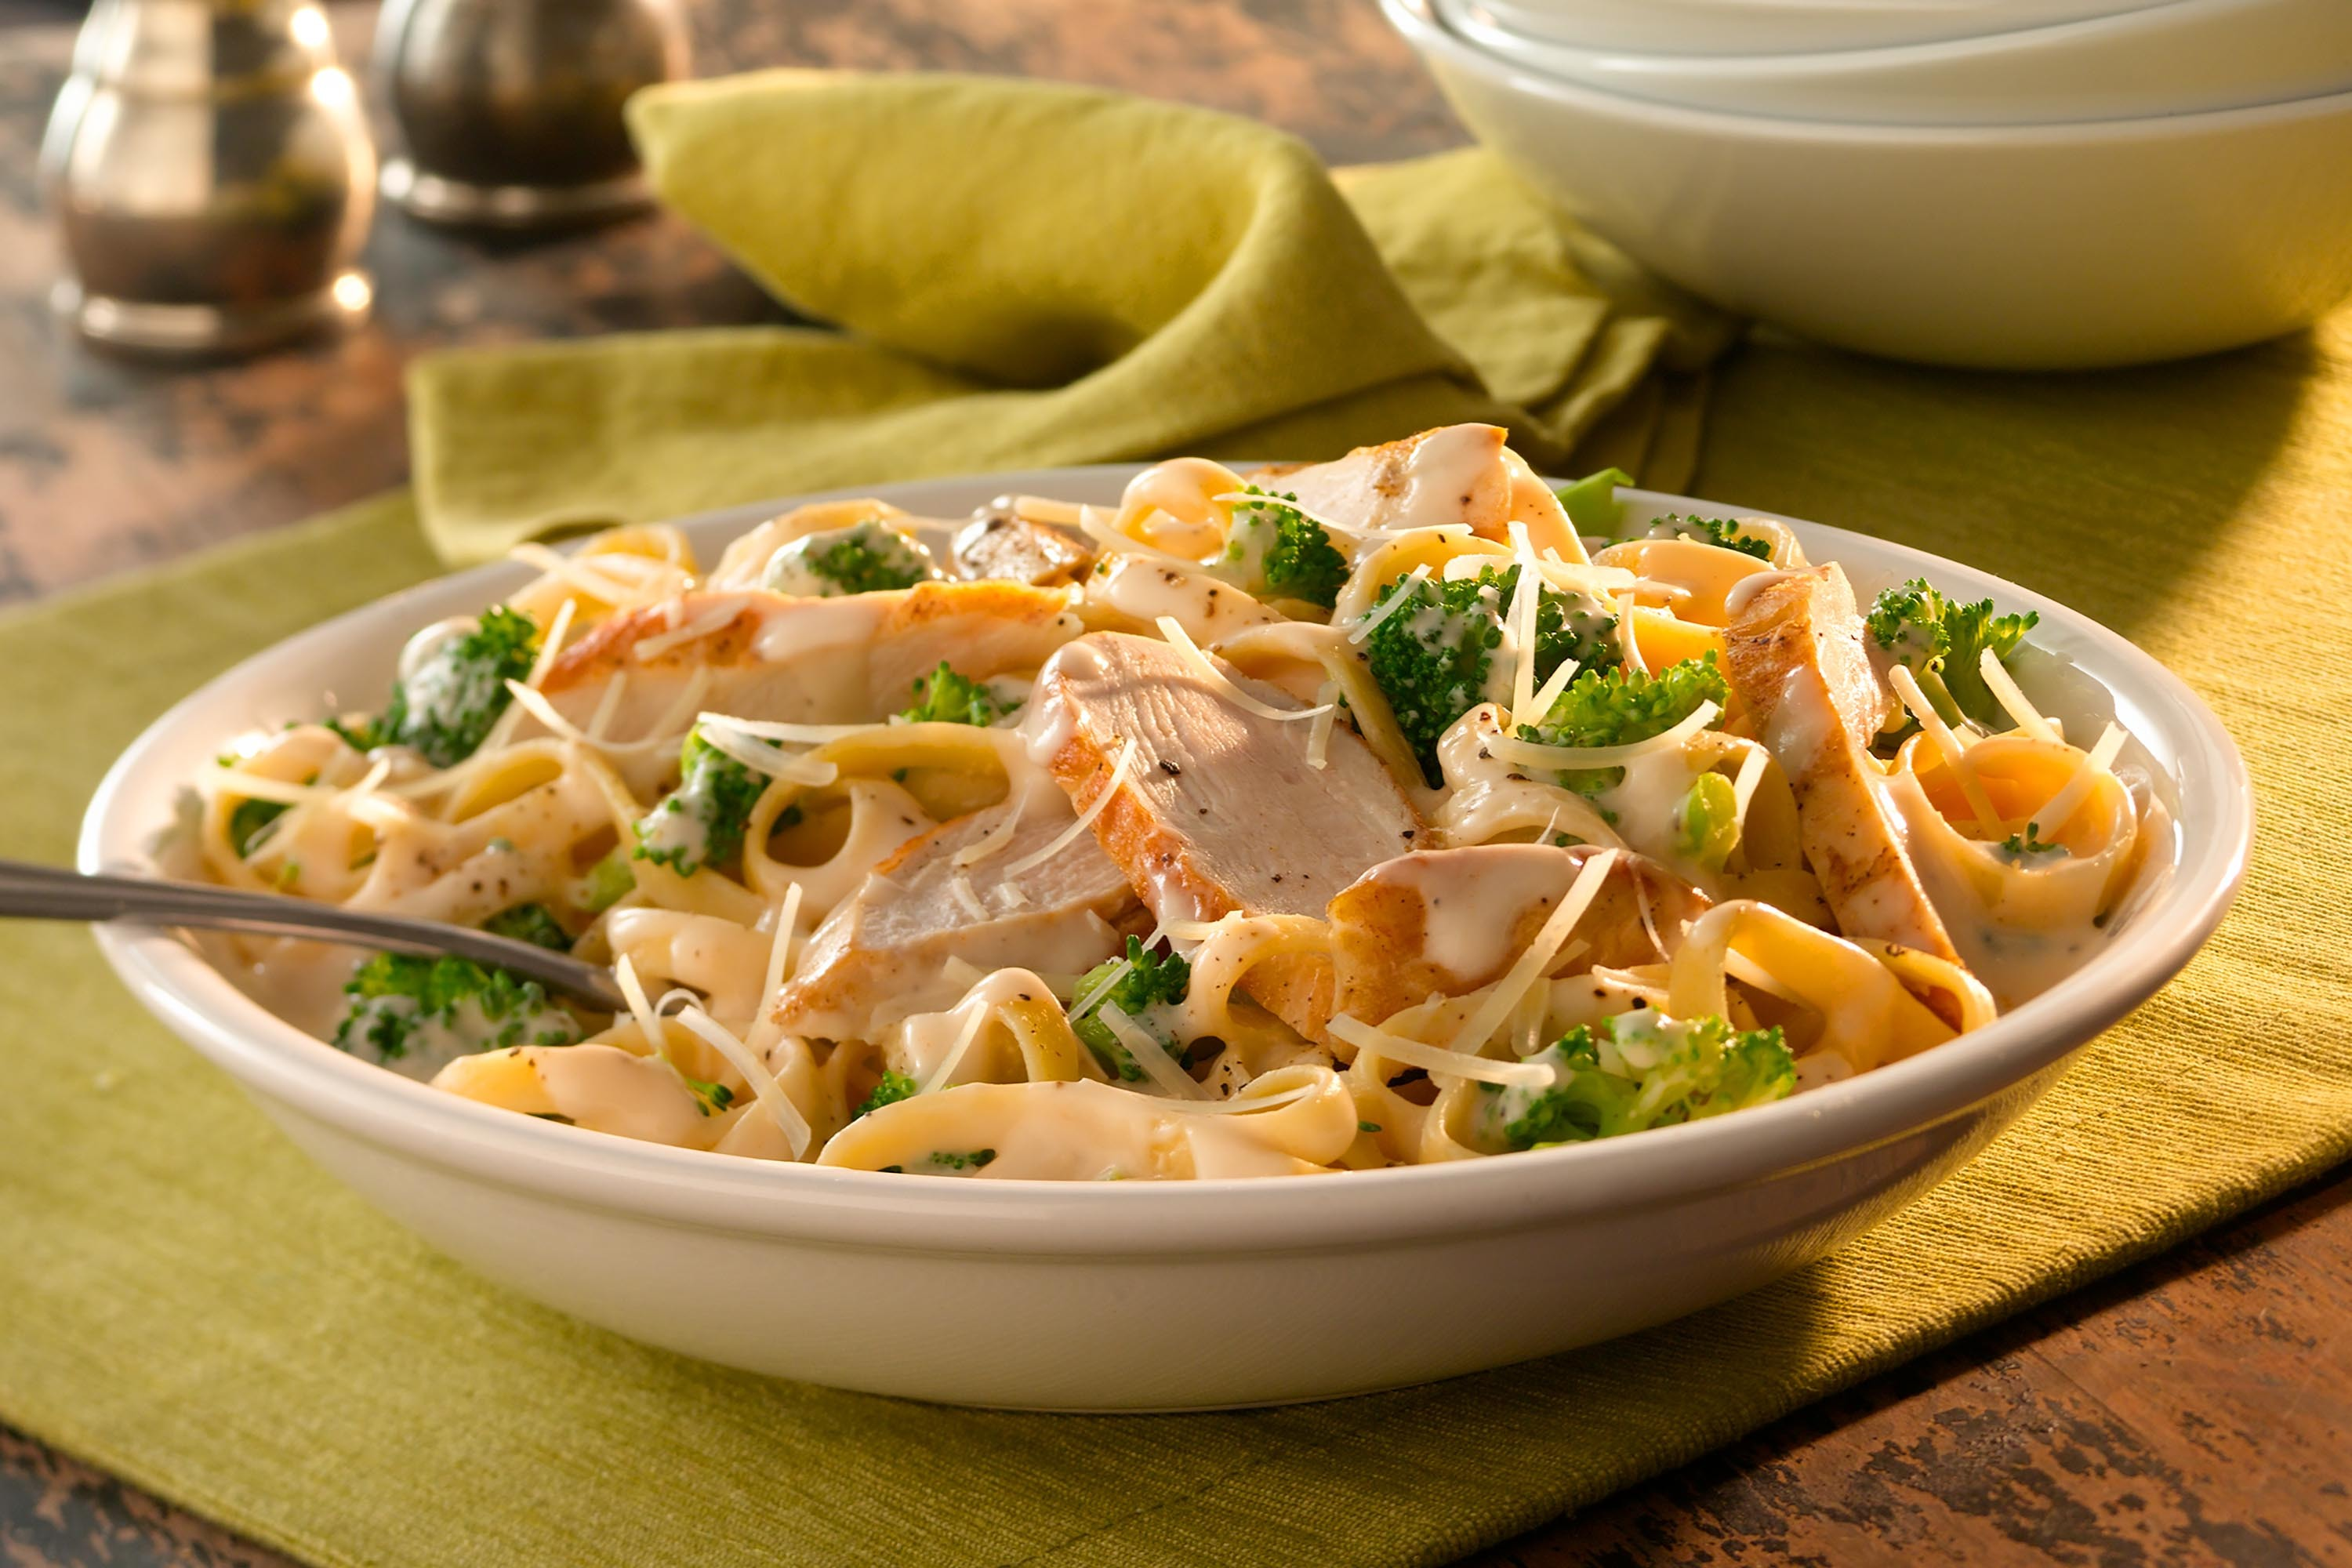 Fettuccine Alfredo with Chicken & Broccoli